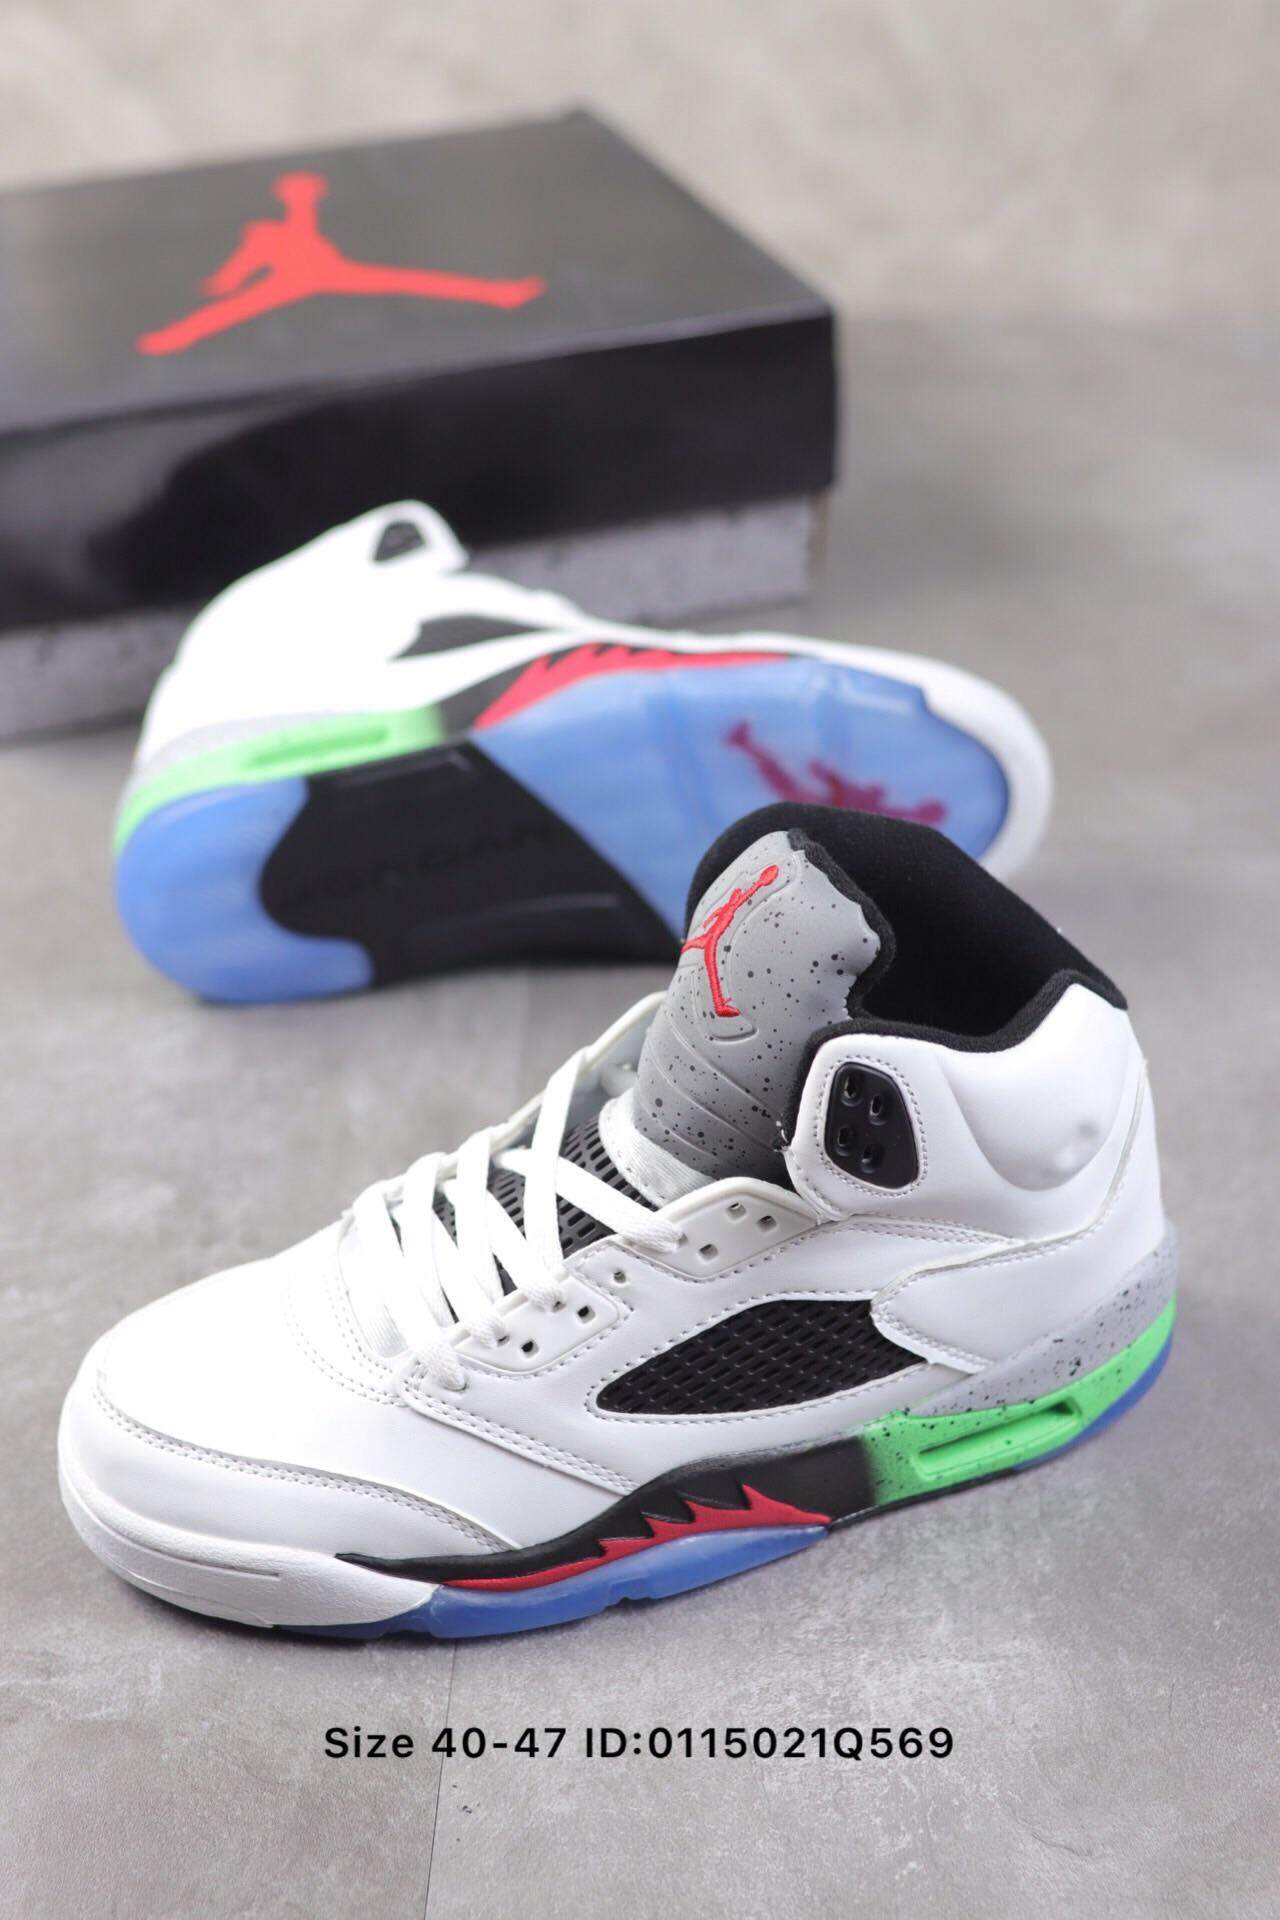 ae788017af5667 Malaysia. AIR JORDAN Fashion Men Basketball Shoes Training Shoes Sports  Shoes Running Sneakers